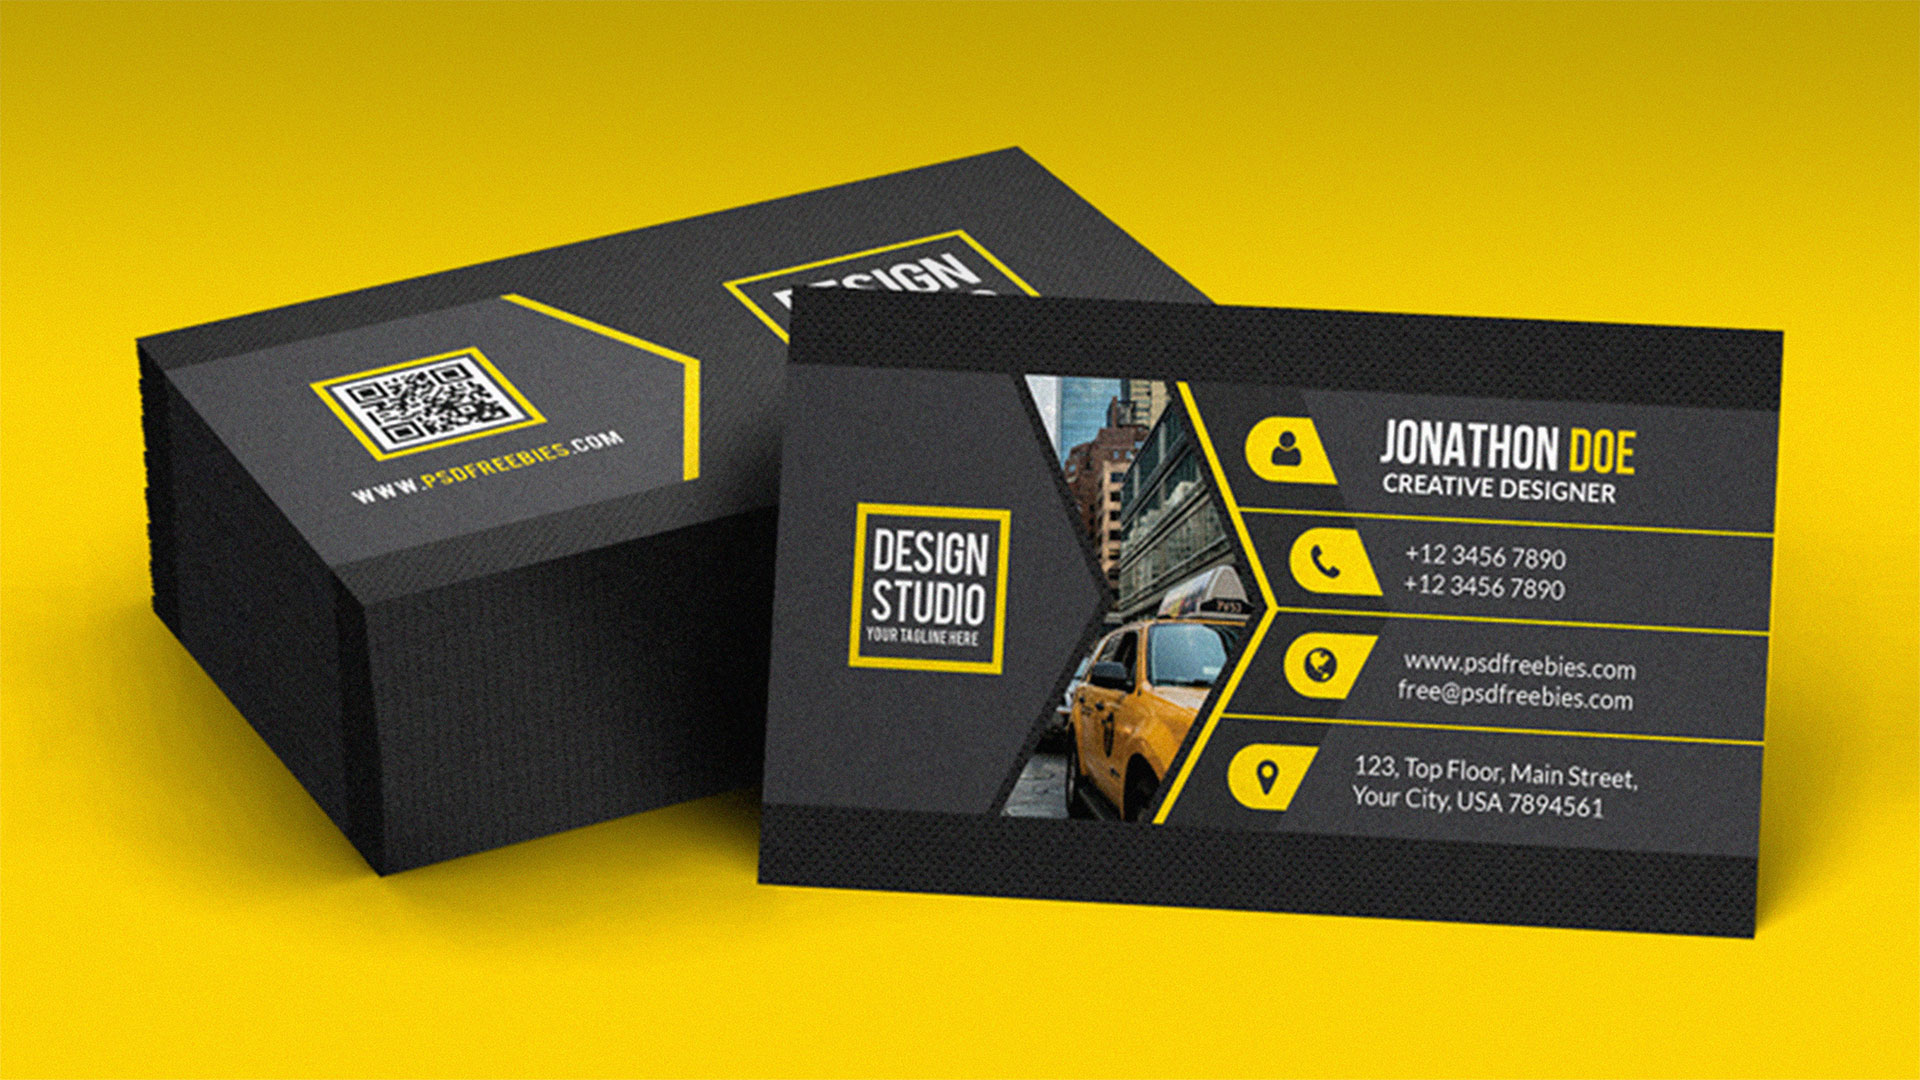 18 of the best free business card templates